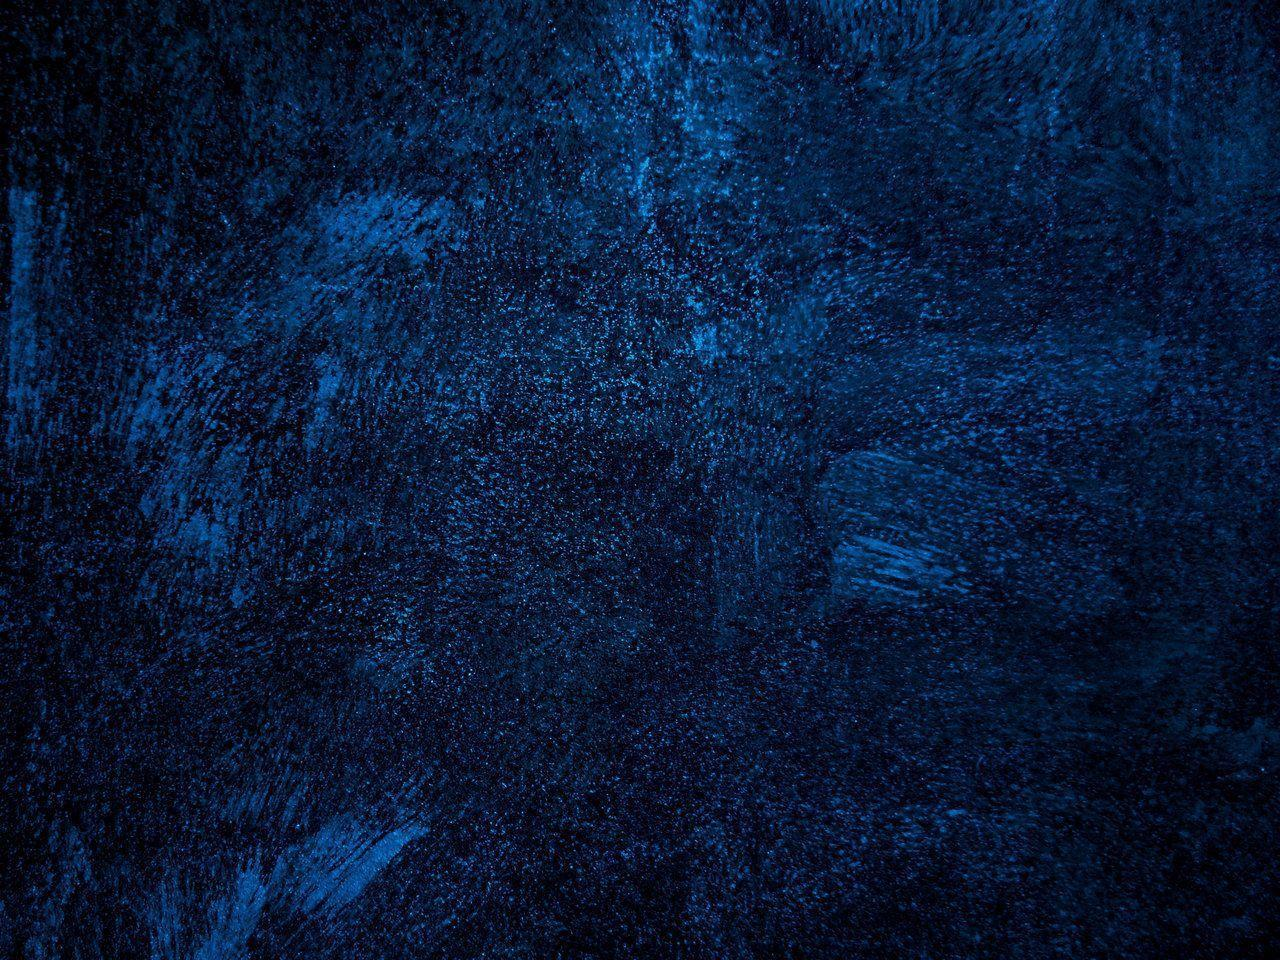 Dark blue backgrounds image wallpaper cave for Dark blue wallpaper for walls